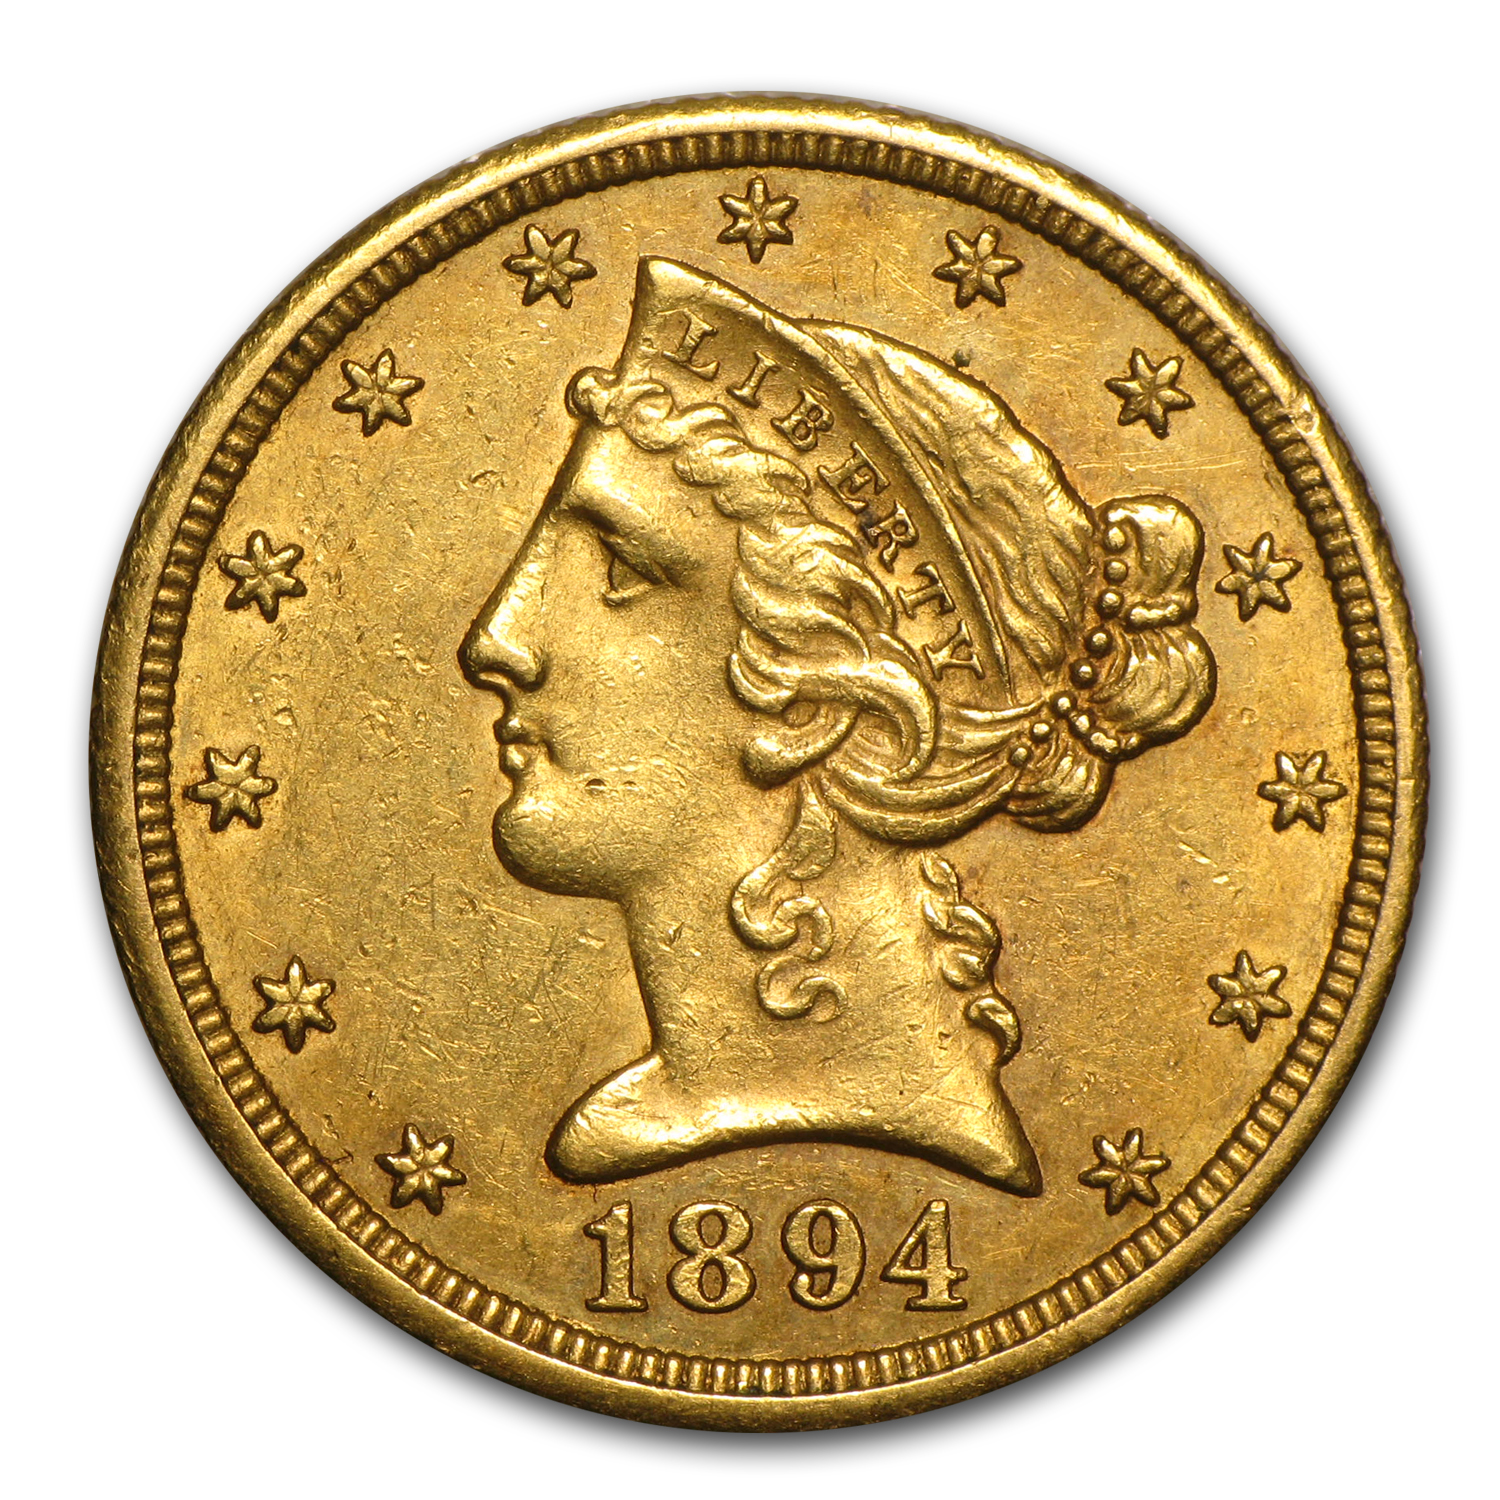 1894-O $5 Liberty Gold Half Eagle - Almost Uncirculated